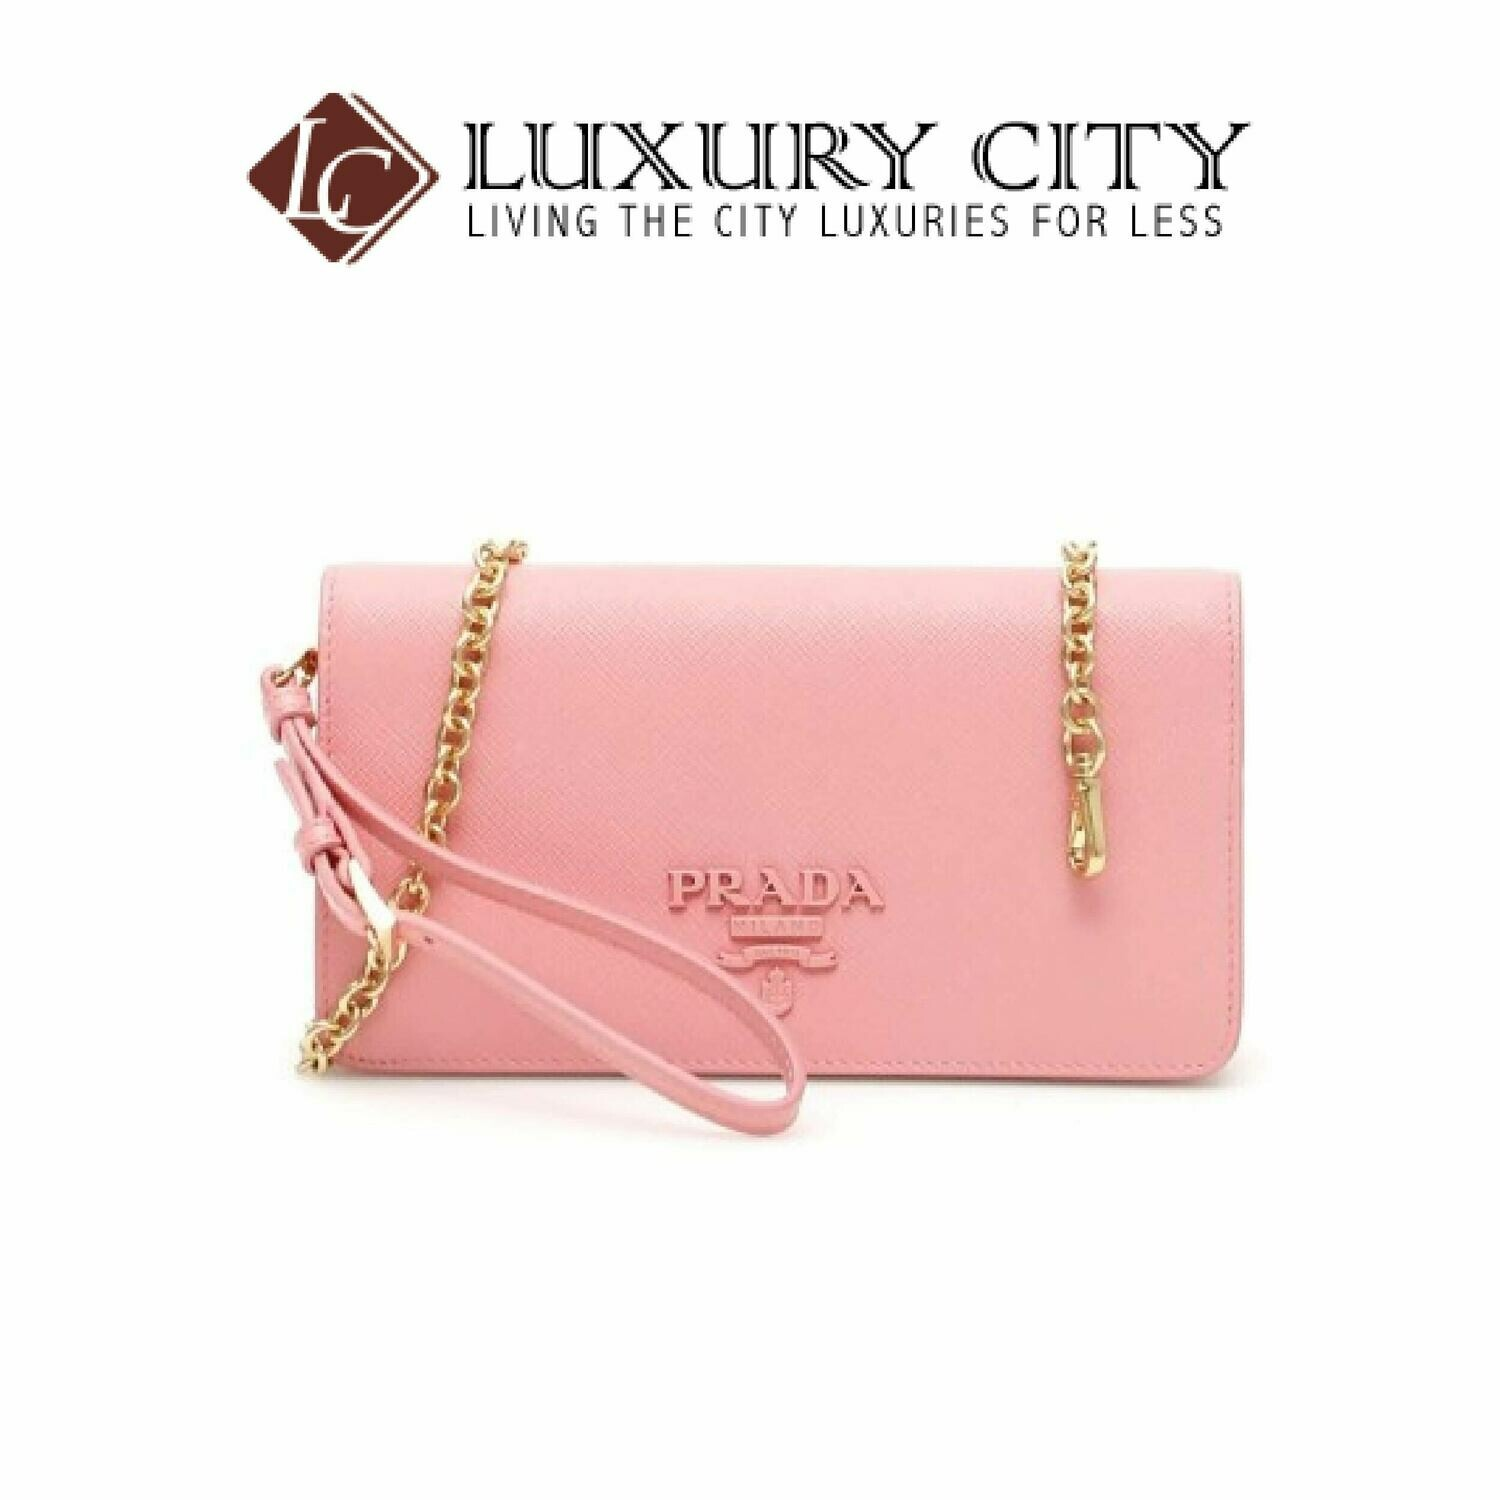 [Luxury City] Prada Mini Saffiano Bag Prada-1DH029 (Light Pink)